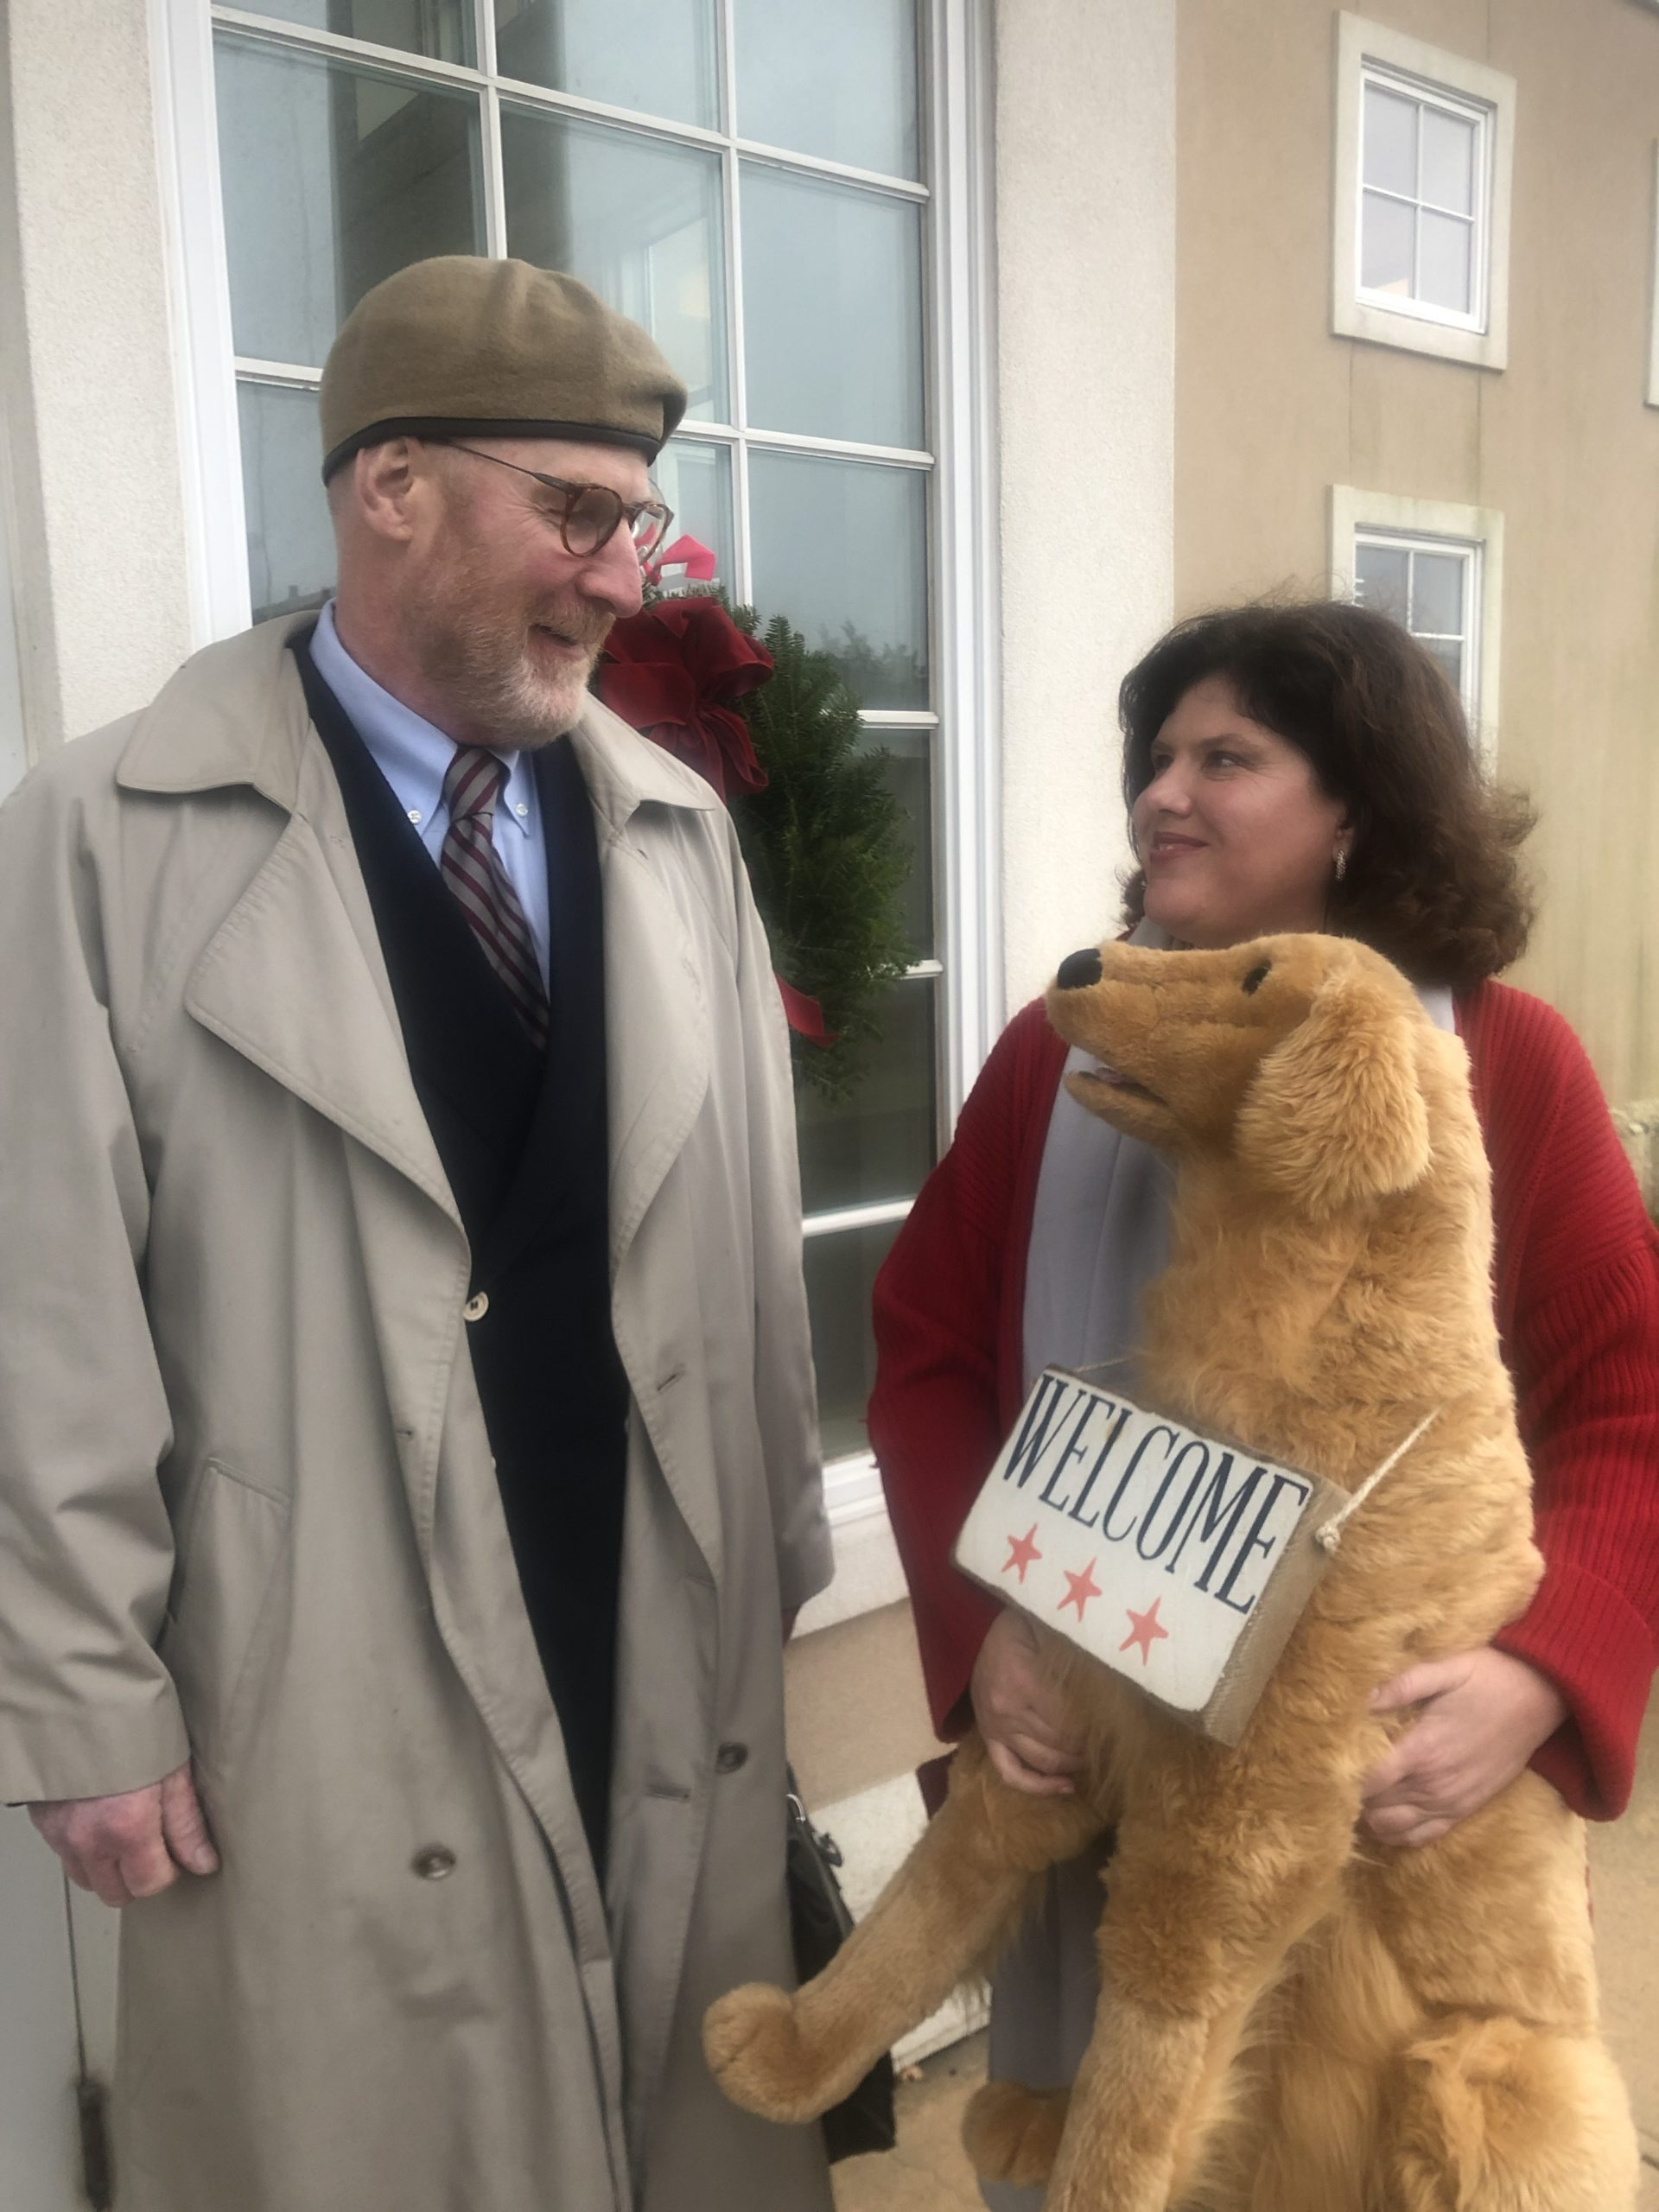 Colleen Moeller and her attorney, Dan Rodgers, have asked for a trial over the ticket issued to Ms. Moeller for placing a stuffed dog with a